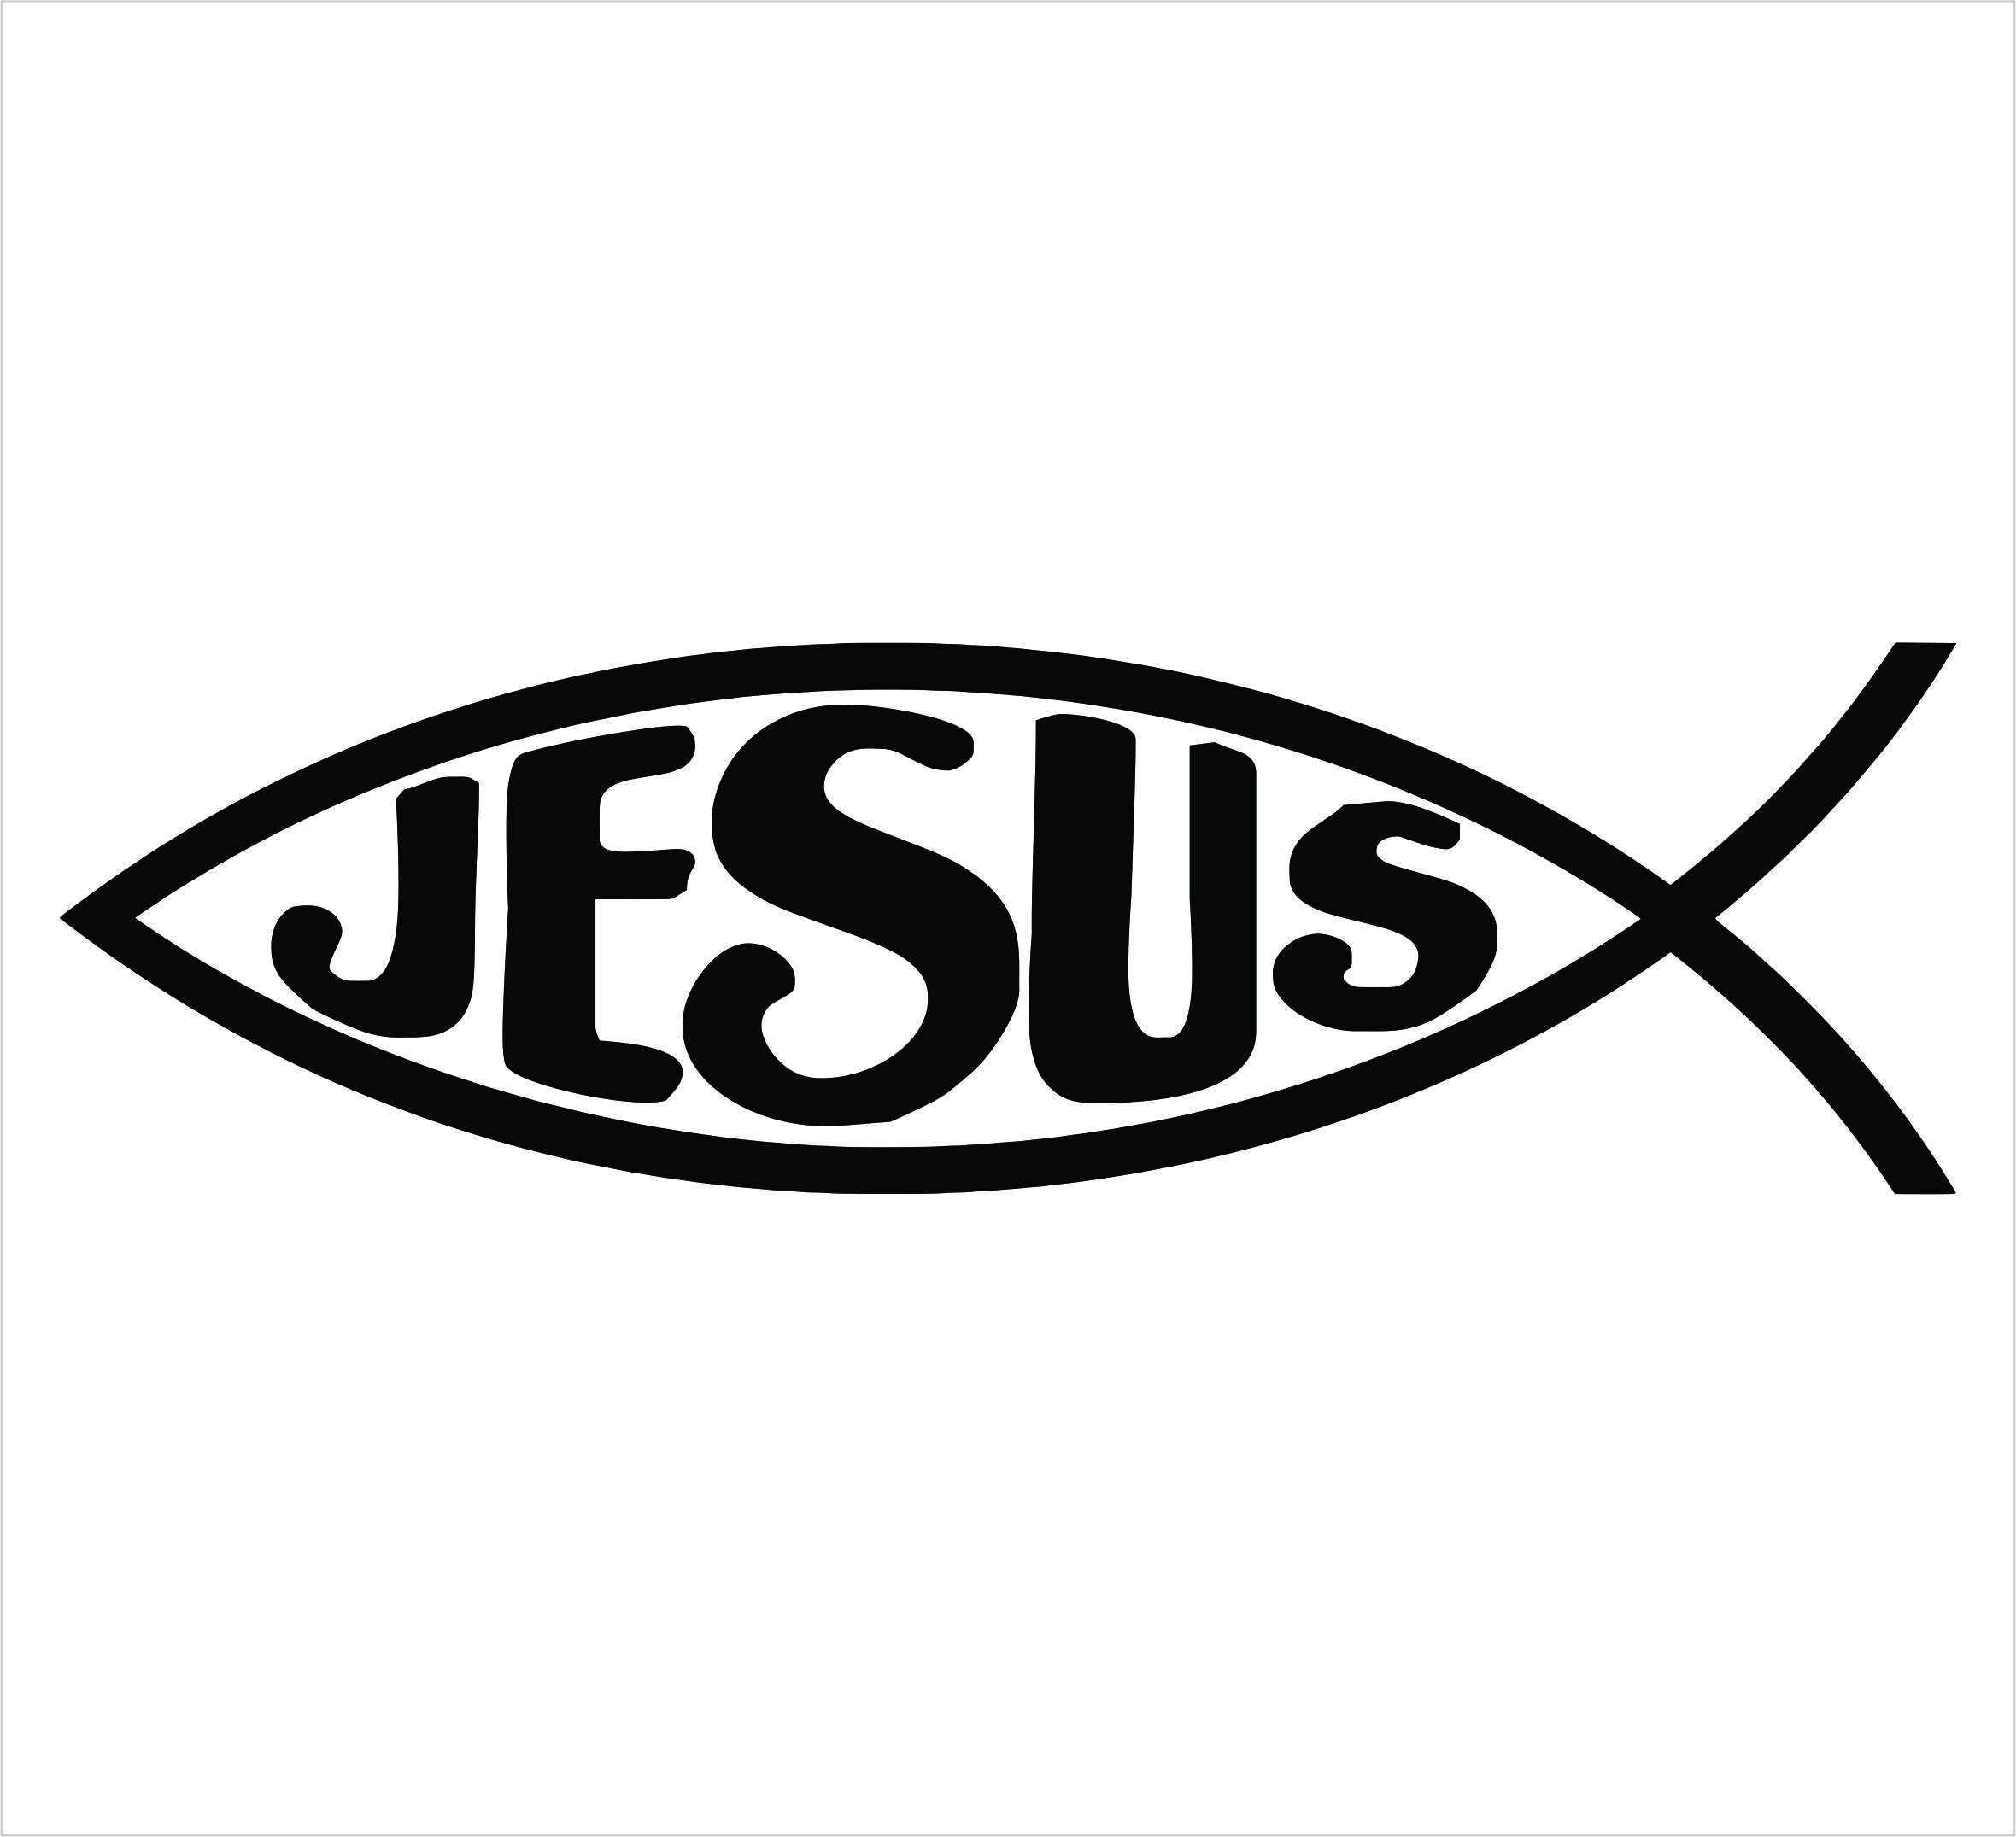 Free Christian Fish Symbol, Download Free Clip Art, Free Clip Art on